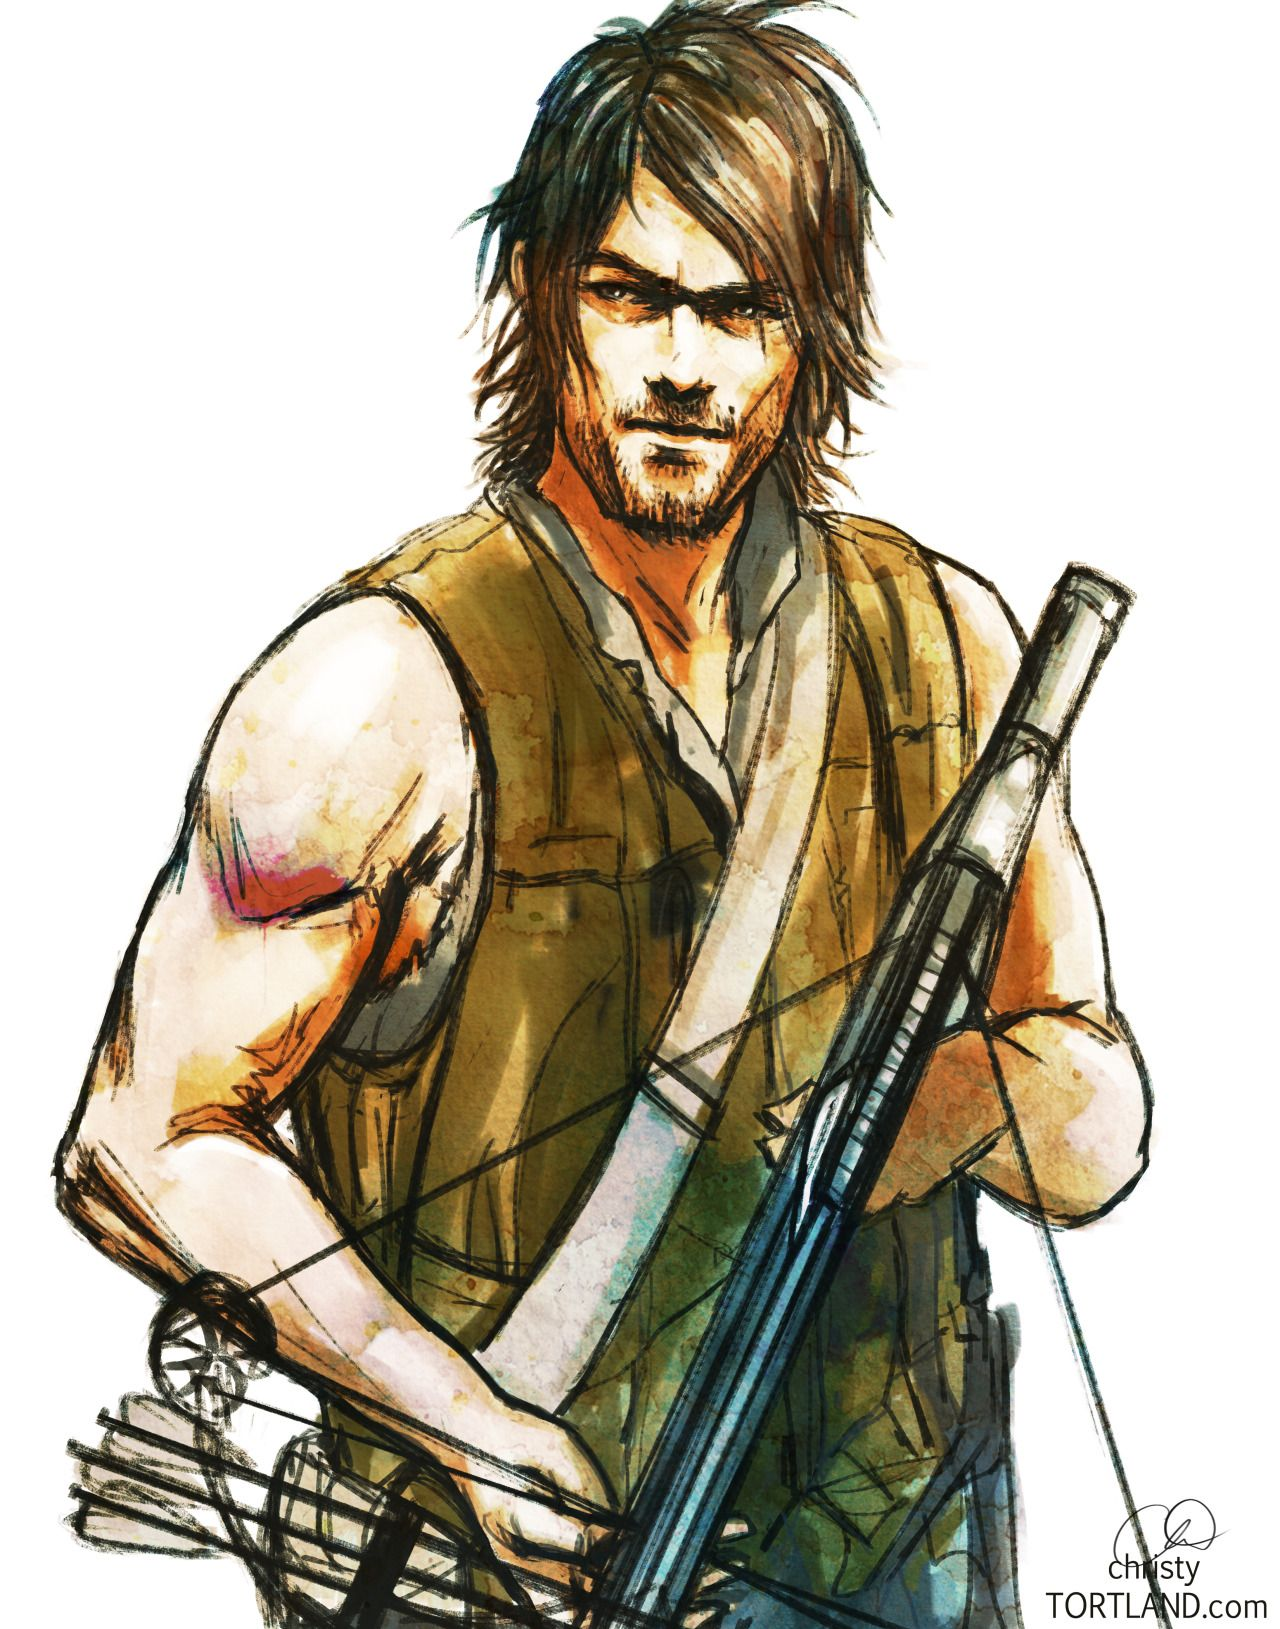 Daryl Dixon Piece Final Prints Available Upon Request Done For A